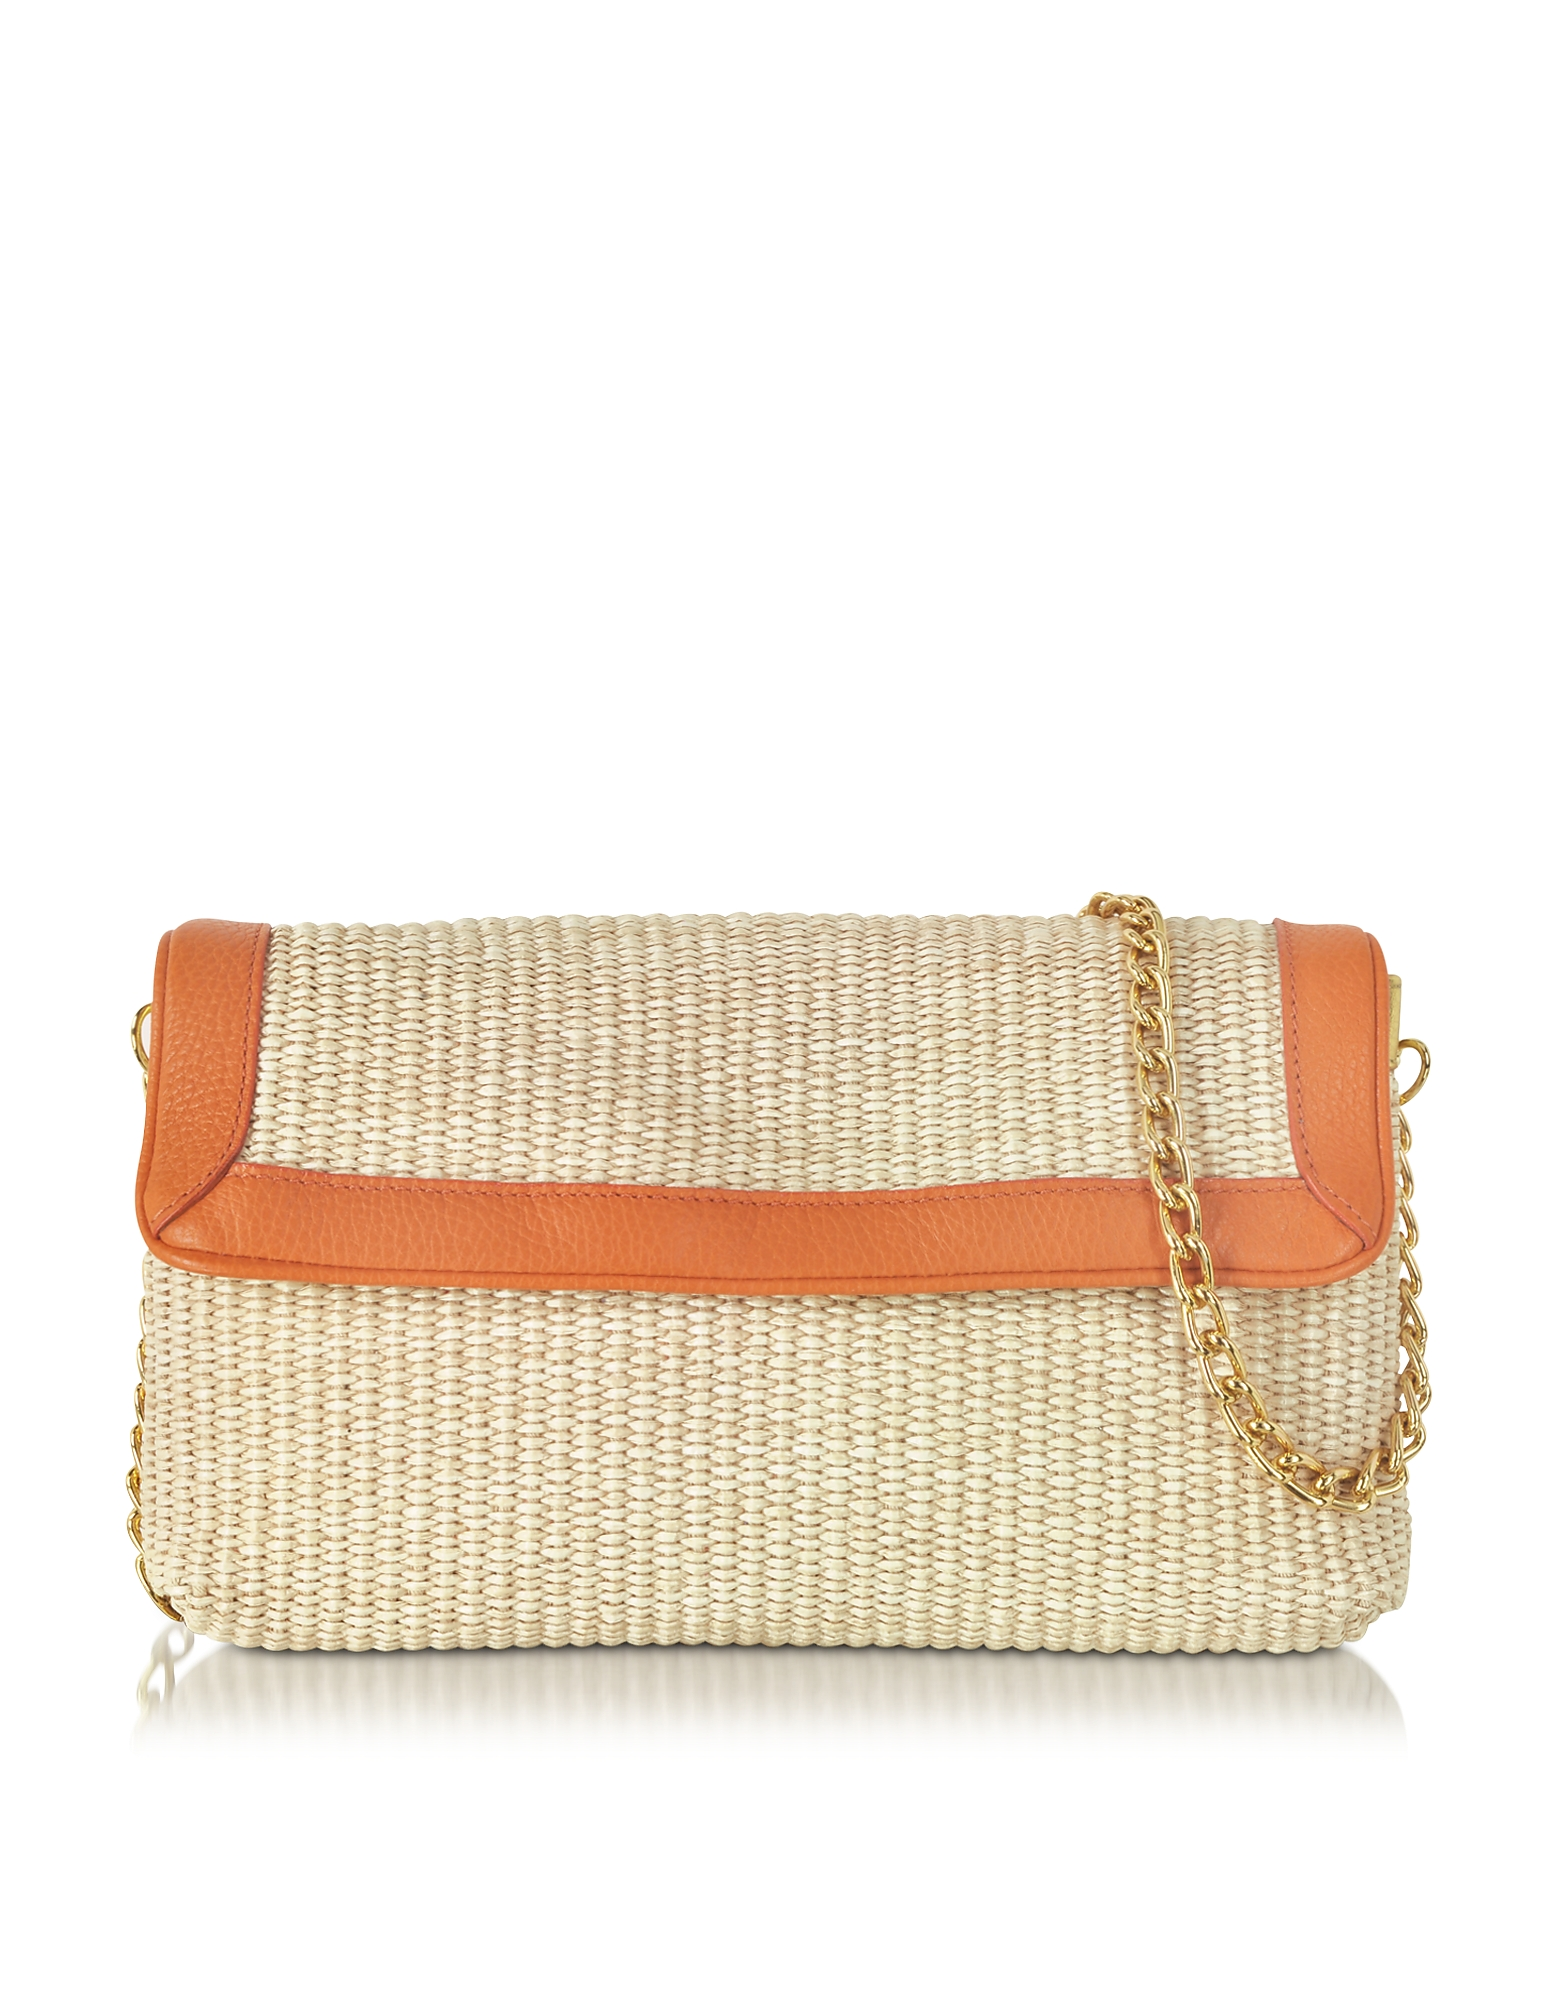 Buti Handbags, Straw and Leather Clutch w/Shoulder Strap